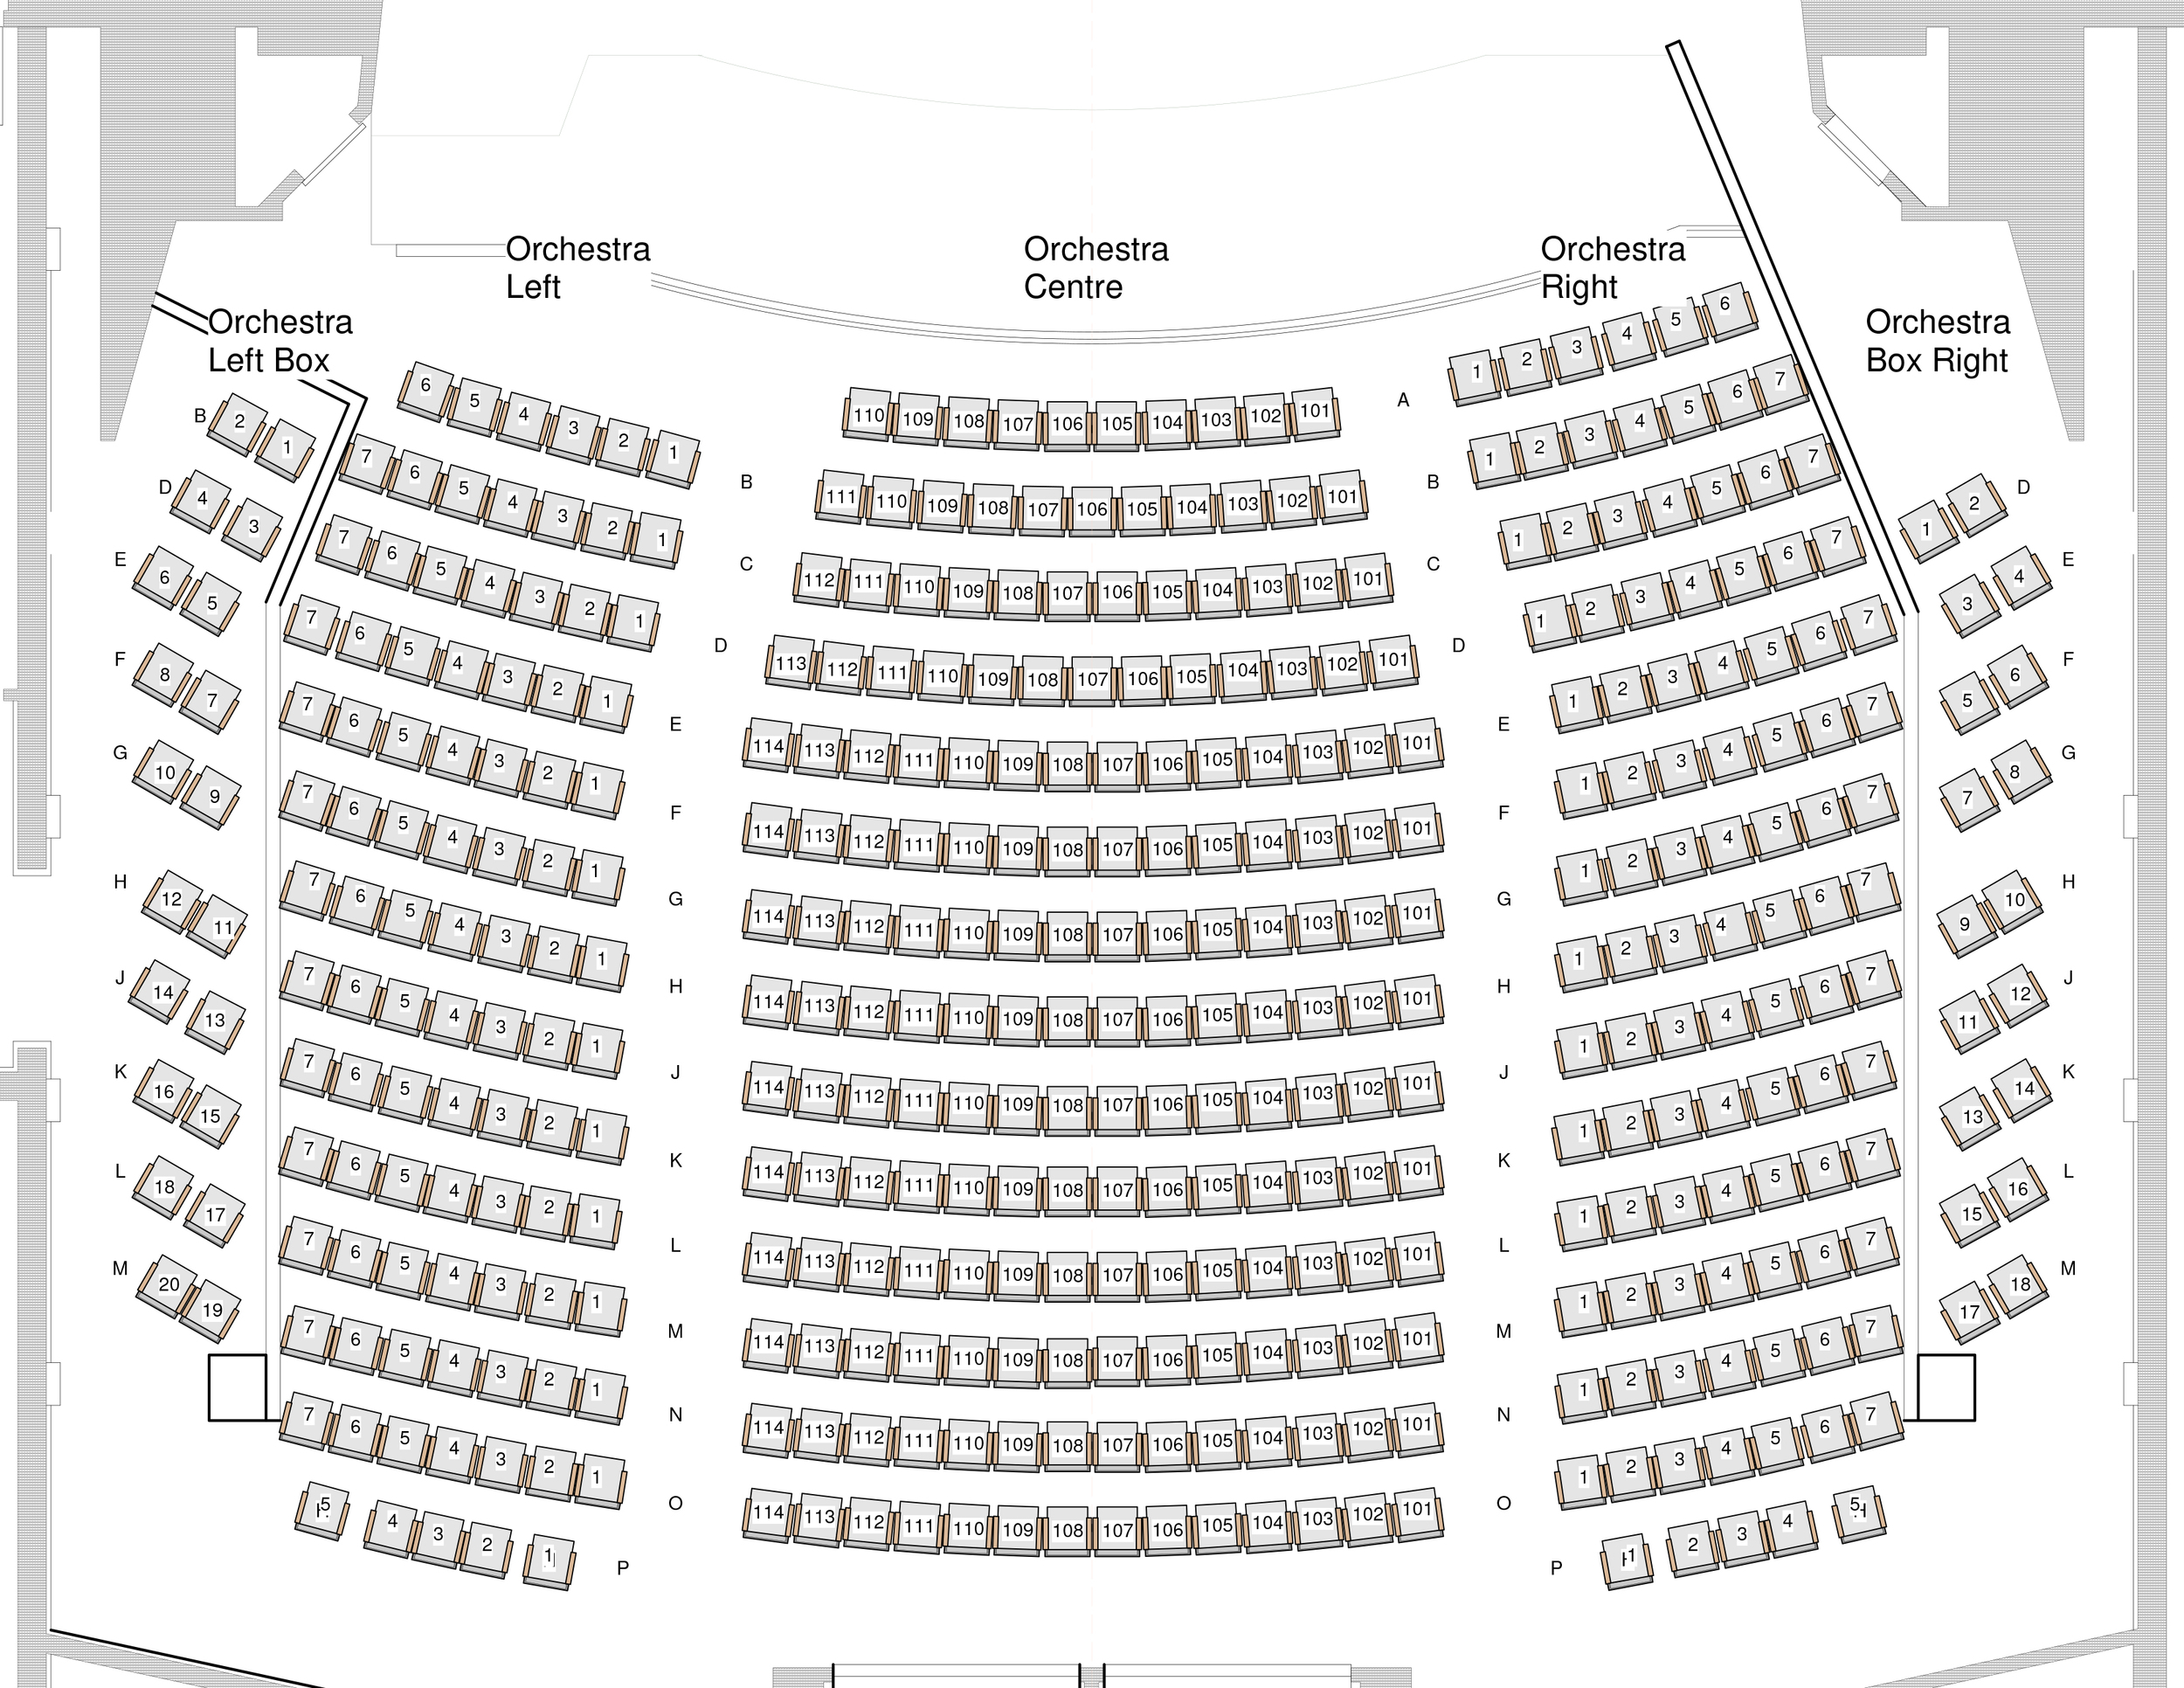 Harris Orch Seating.jpg